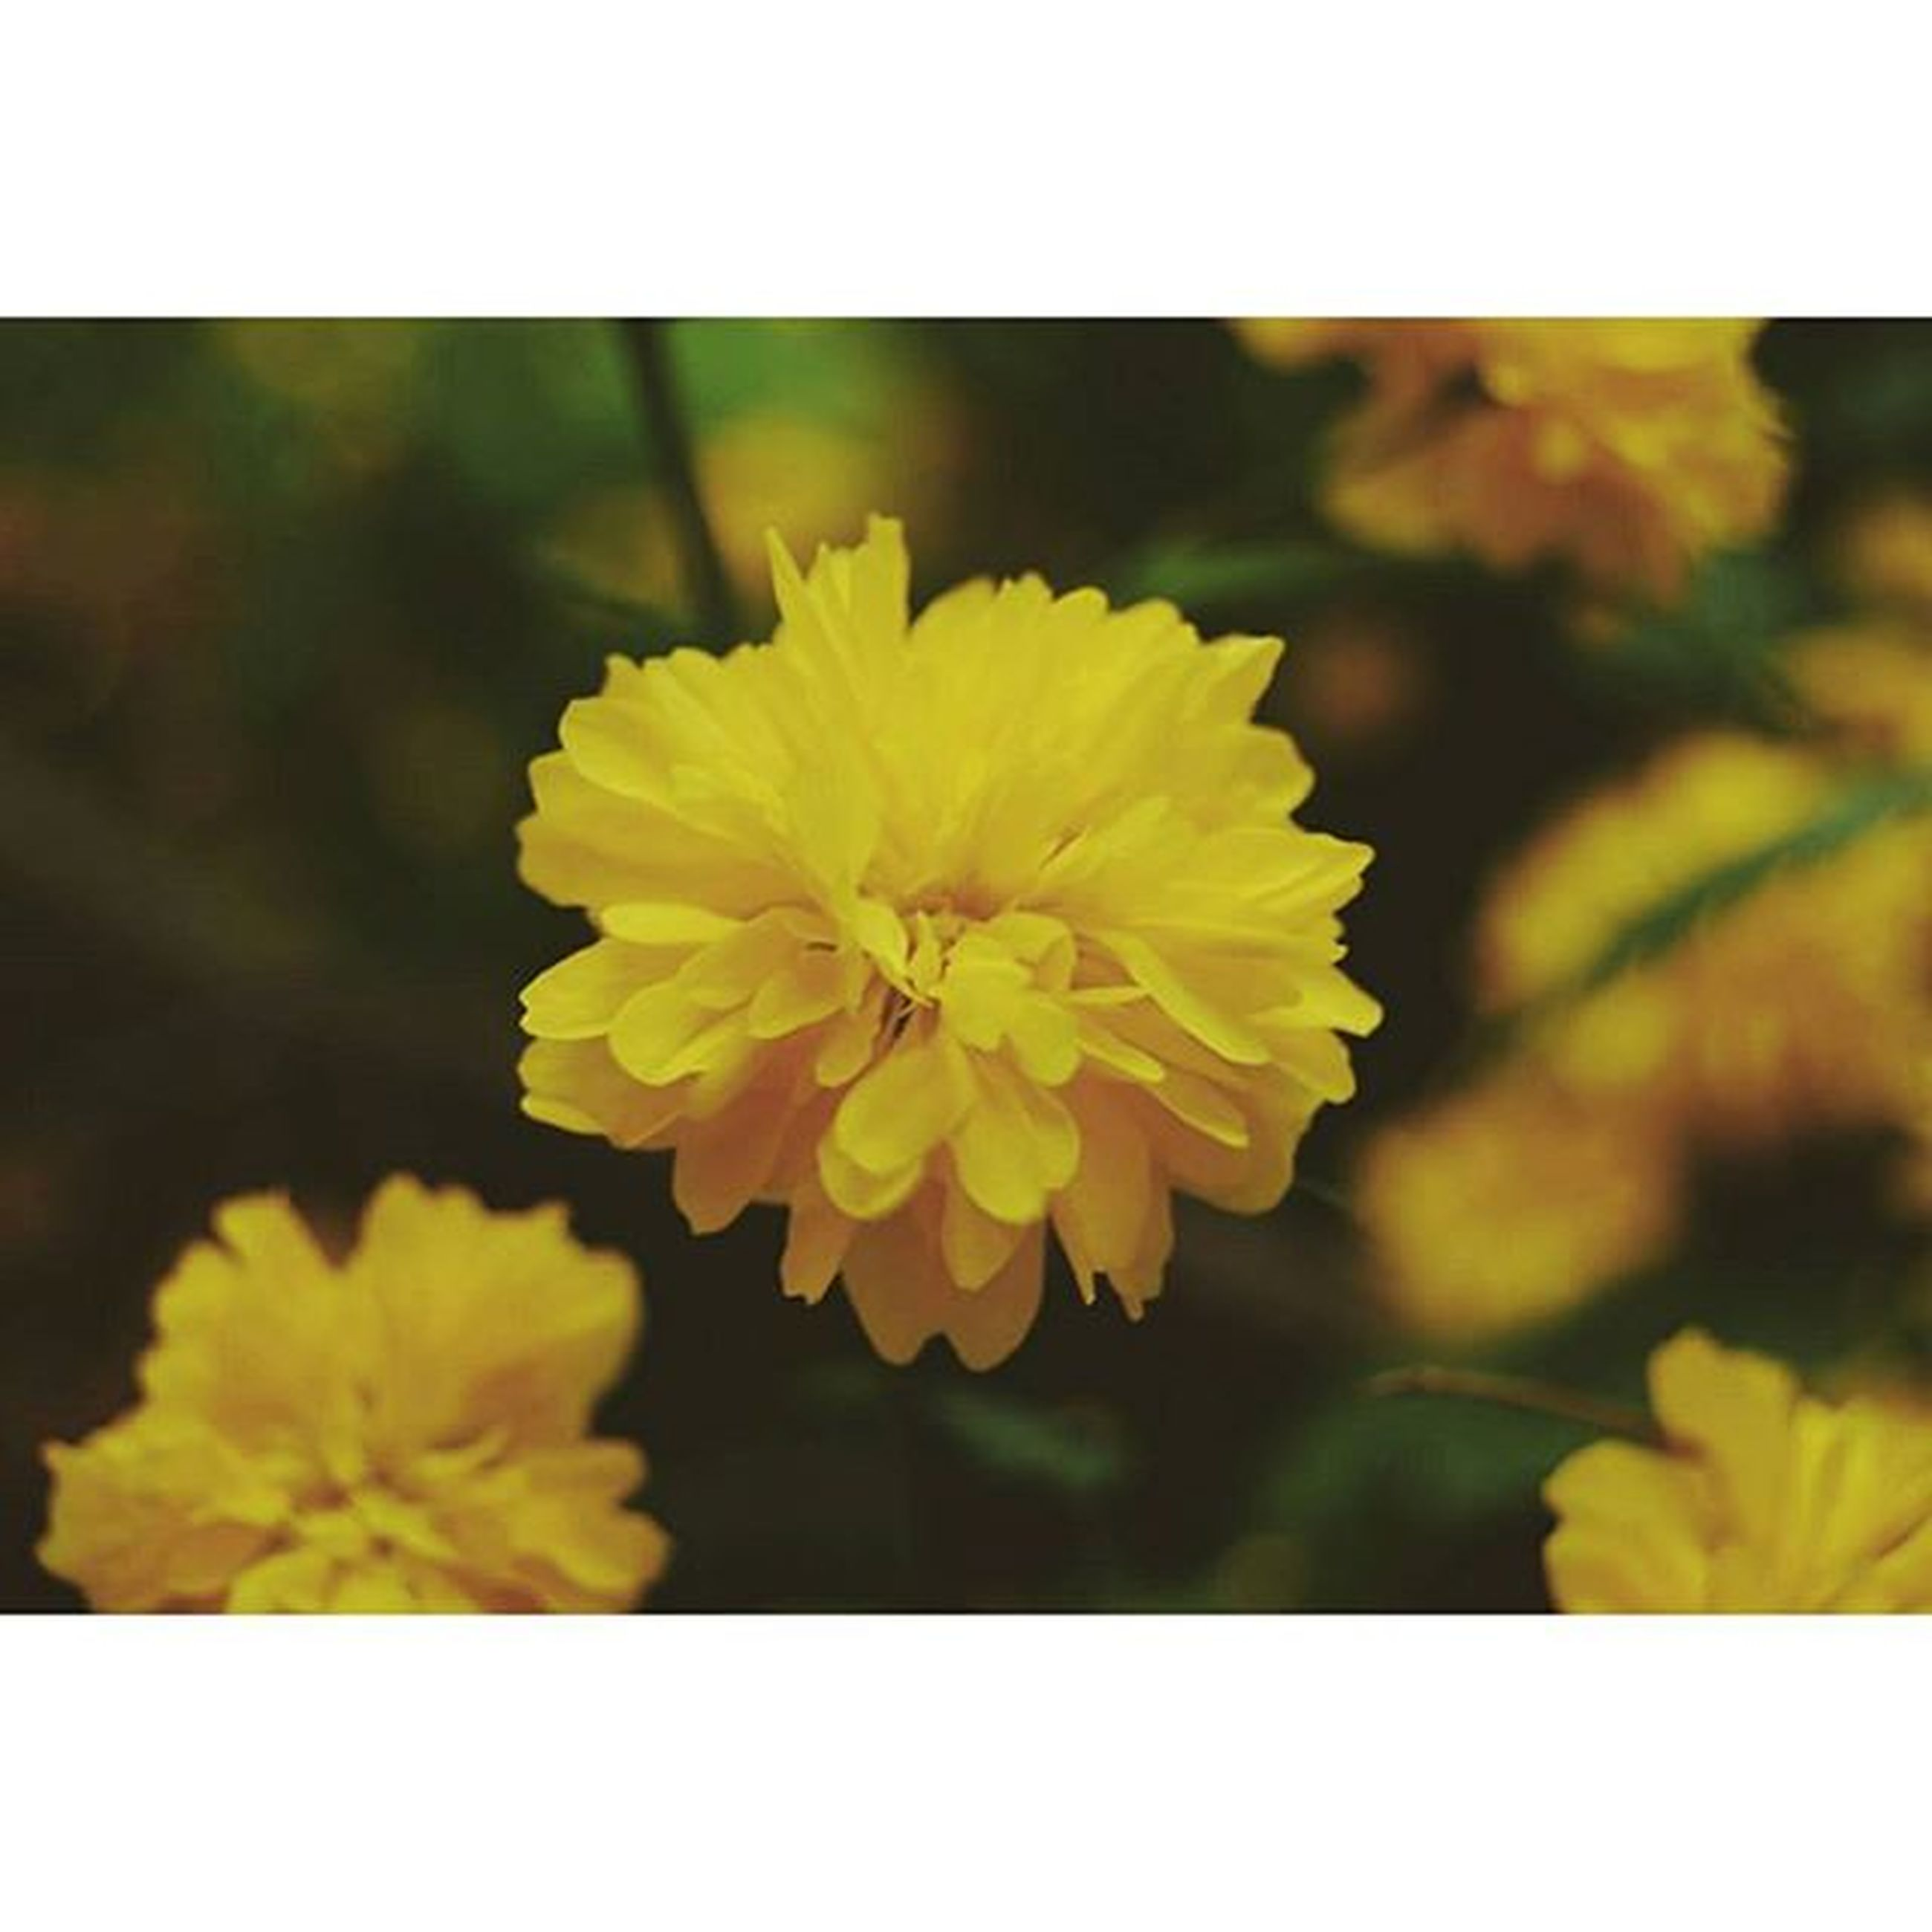 flower, transfer print, yellow, freshness, petal, fragility, flower head, growth, close-up, beauty in nature, auto post production filter, focus on foreground, nature, blooming, single flower, plant, in bloom, selective focus, blossom, outdoors